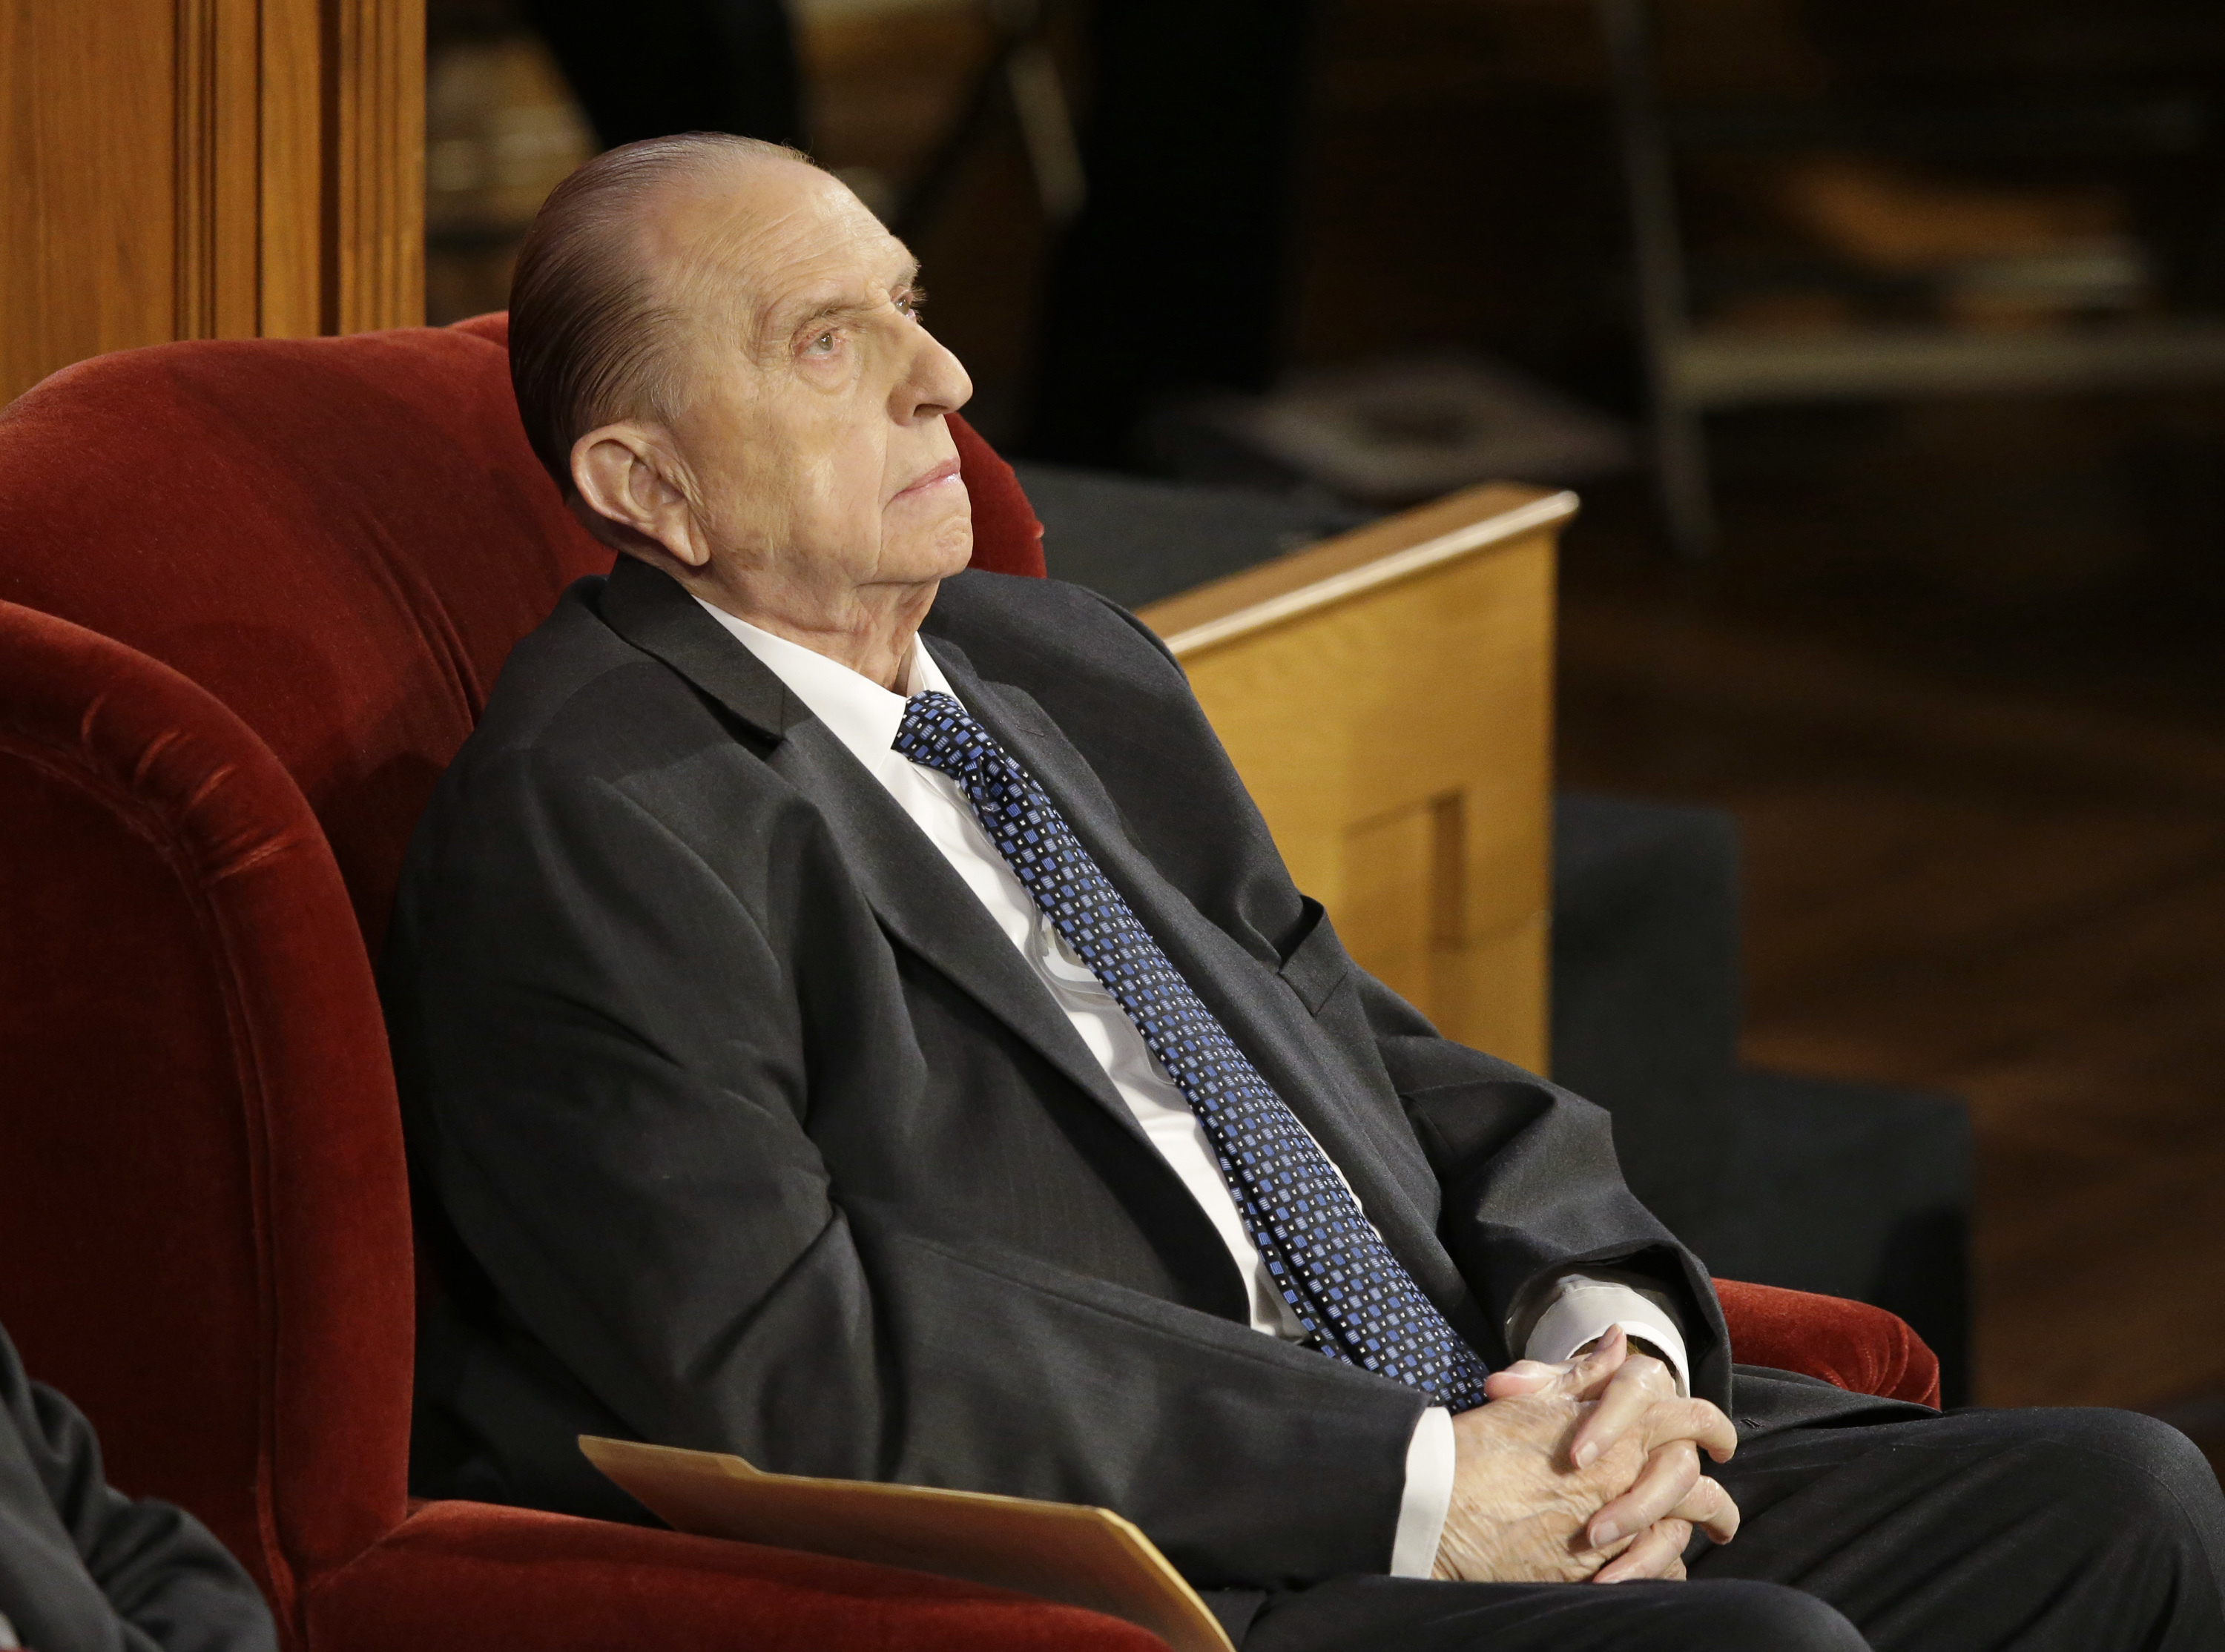 FILE - In this July 10, 2015, file photo, shows President Thomas S. Monson, of The Church of Jesus Christ of Latter-day Saints, attends the memorial service for Mormon leader Boyd K. Packer at the Tabernacle, on Temple Square, in Salt Lake City. Monson, the 16th president of the Mormon church, died Tuesday, Jan. 2, 2018, after nine years in office. He was 90. (AP Photo/Rick Bowmer, File)